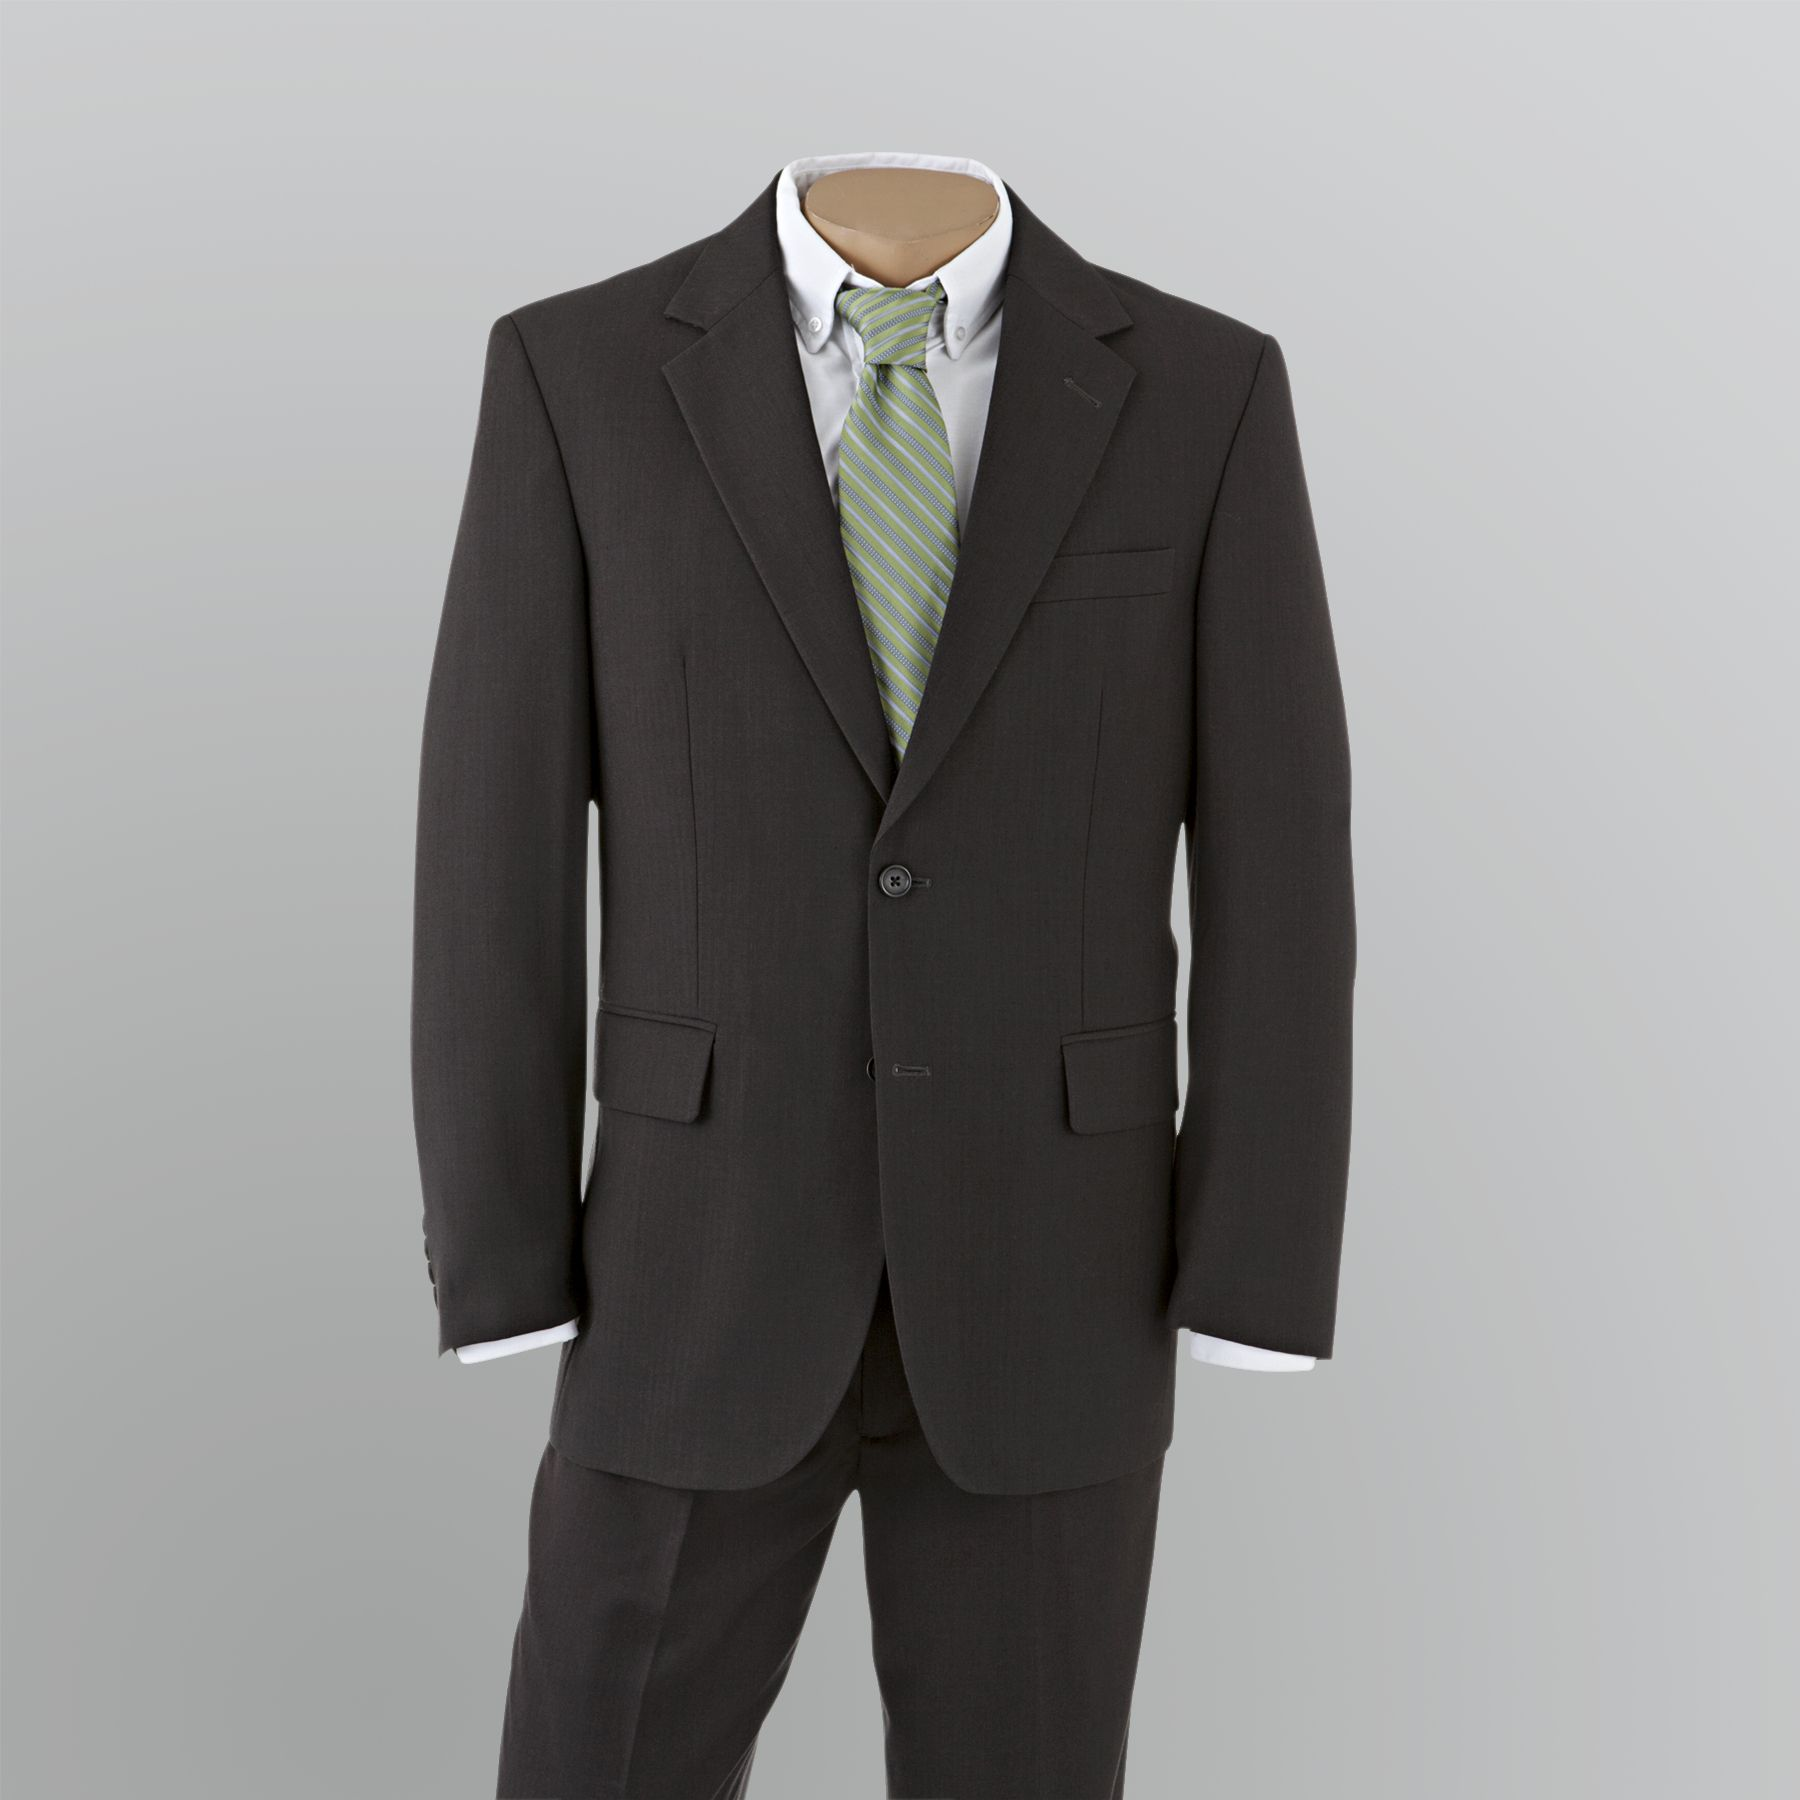 Arrow Men's Suit Jacket at Sears.com